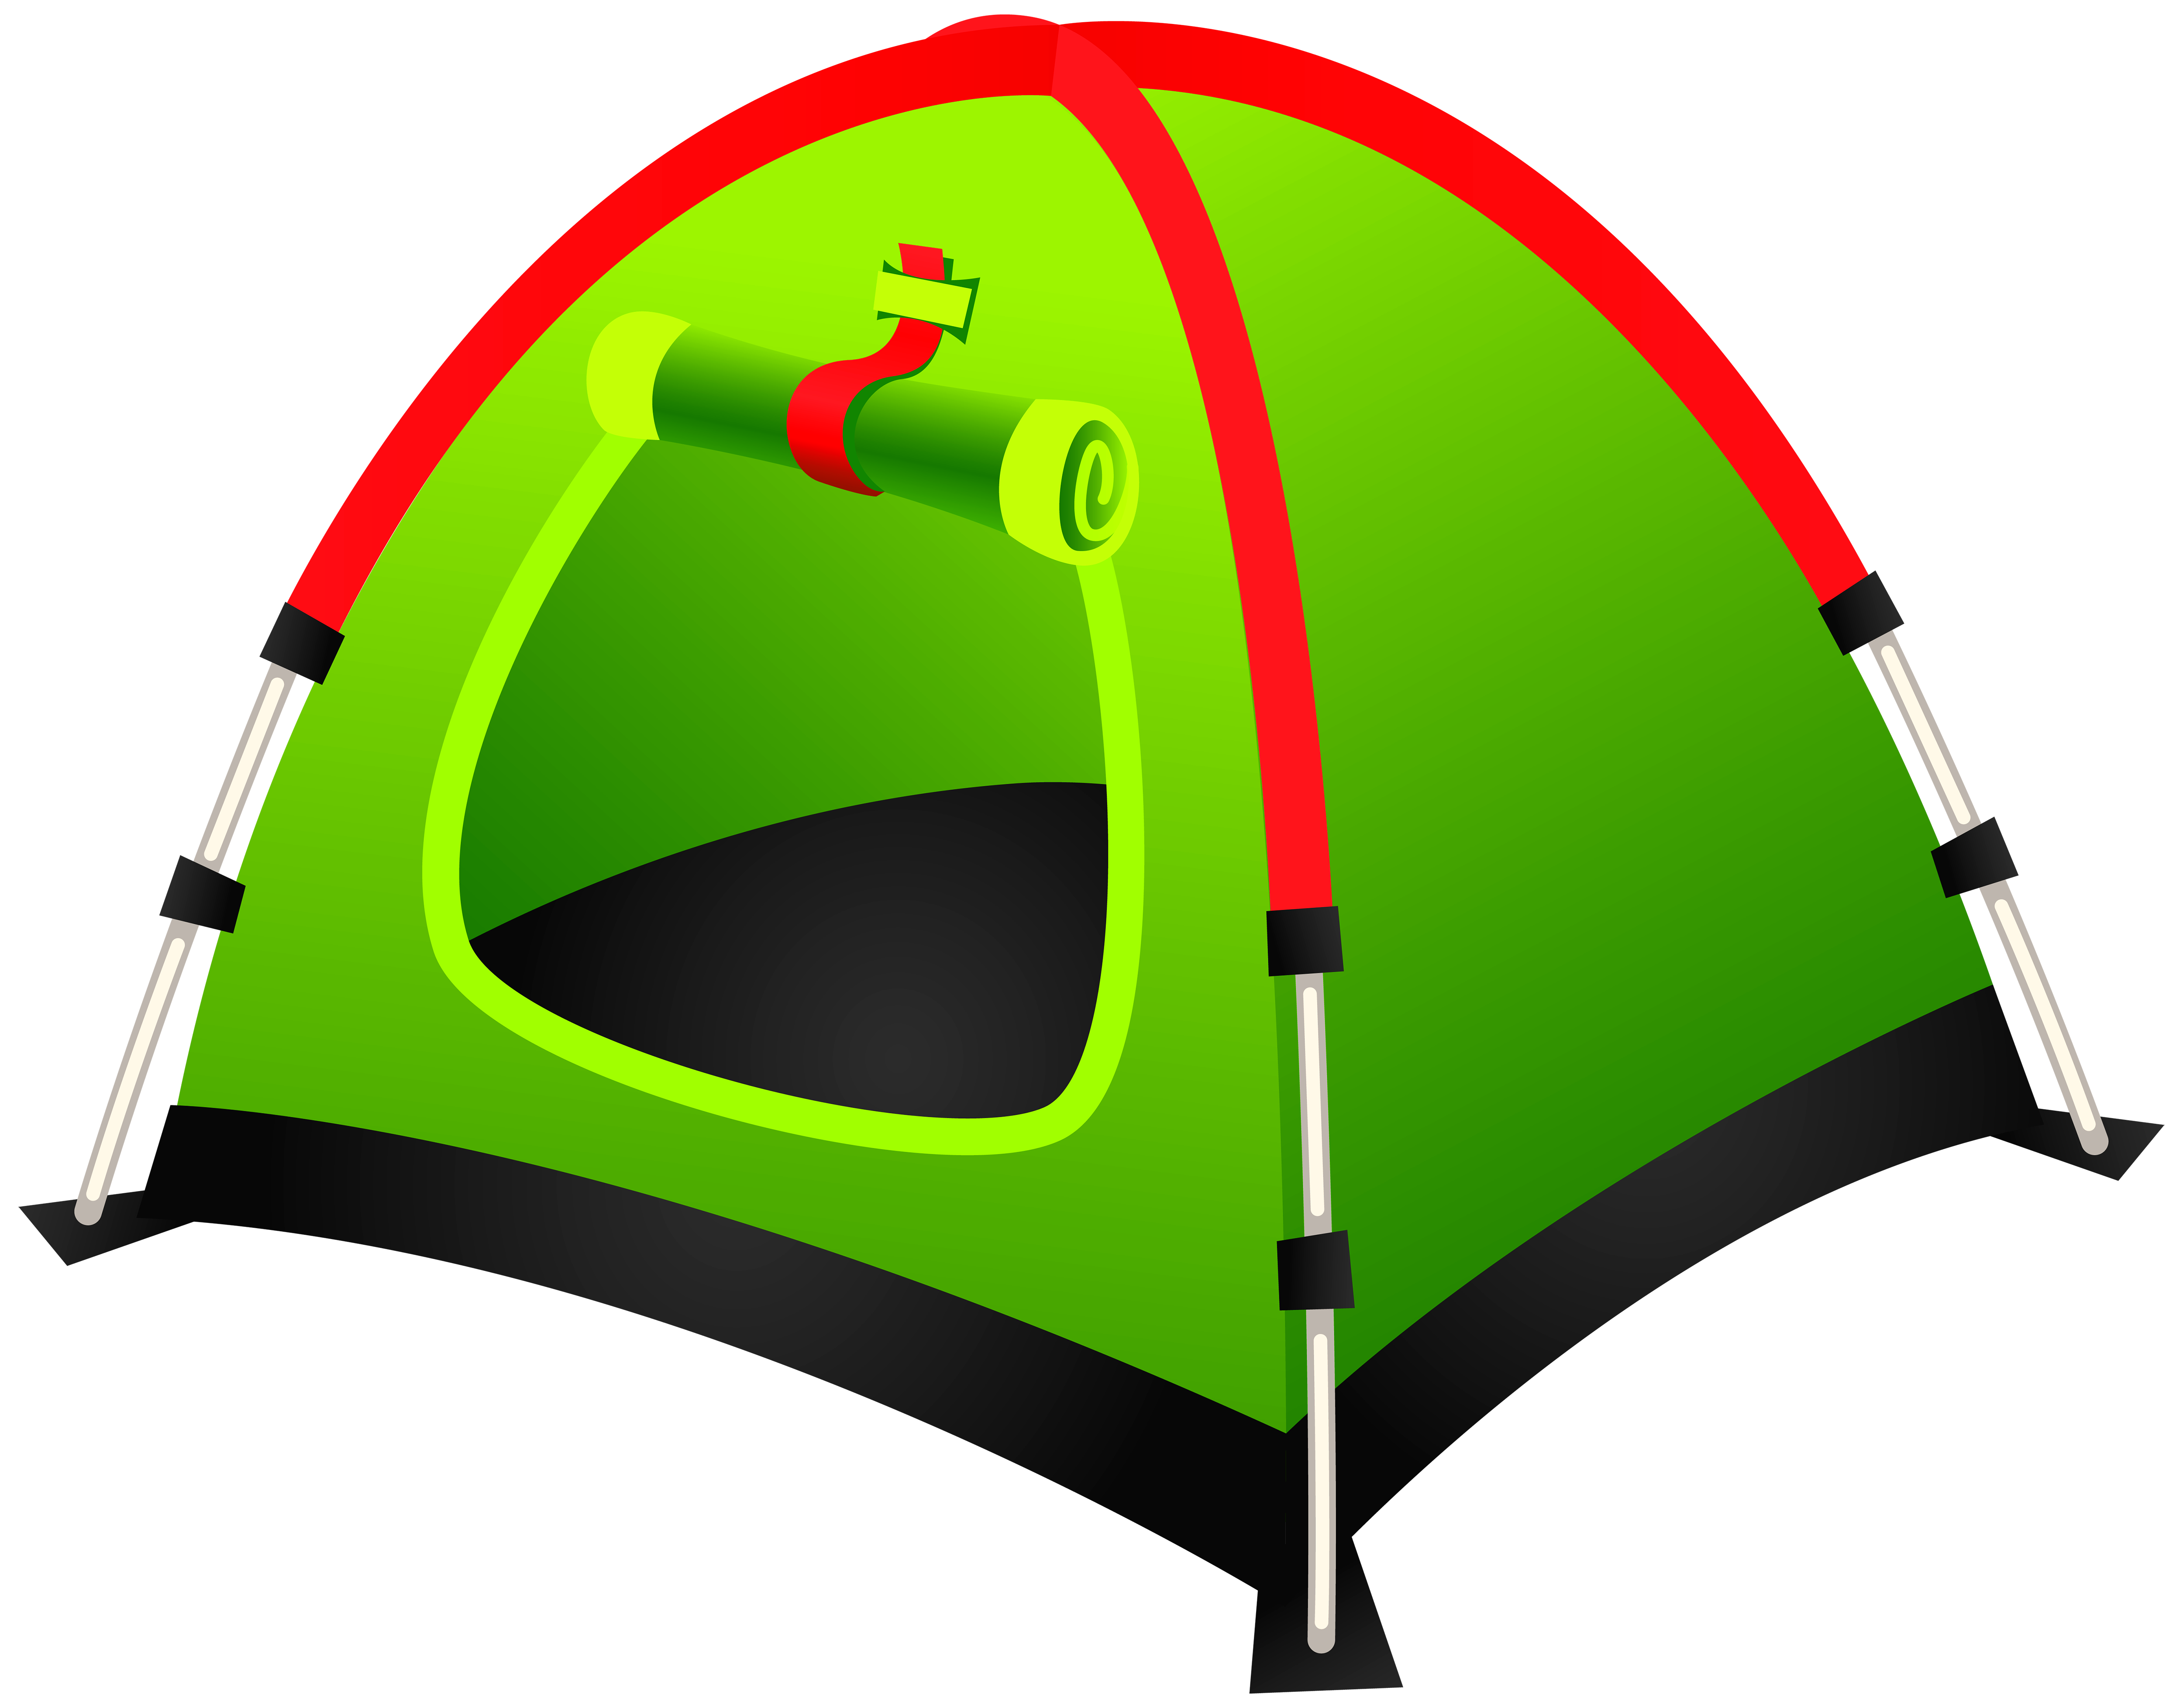 5000x3912 Climbing Astonishing Tent Clipart Clip Art Images Free Open